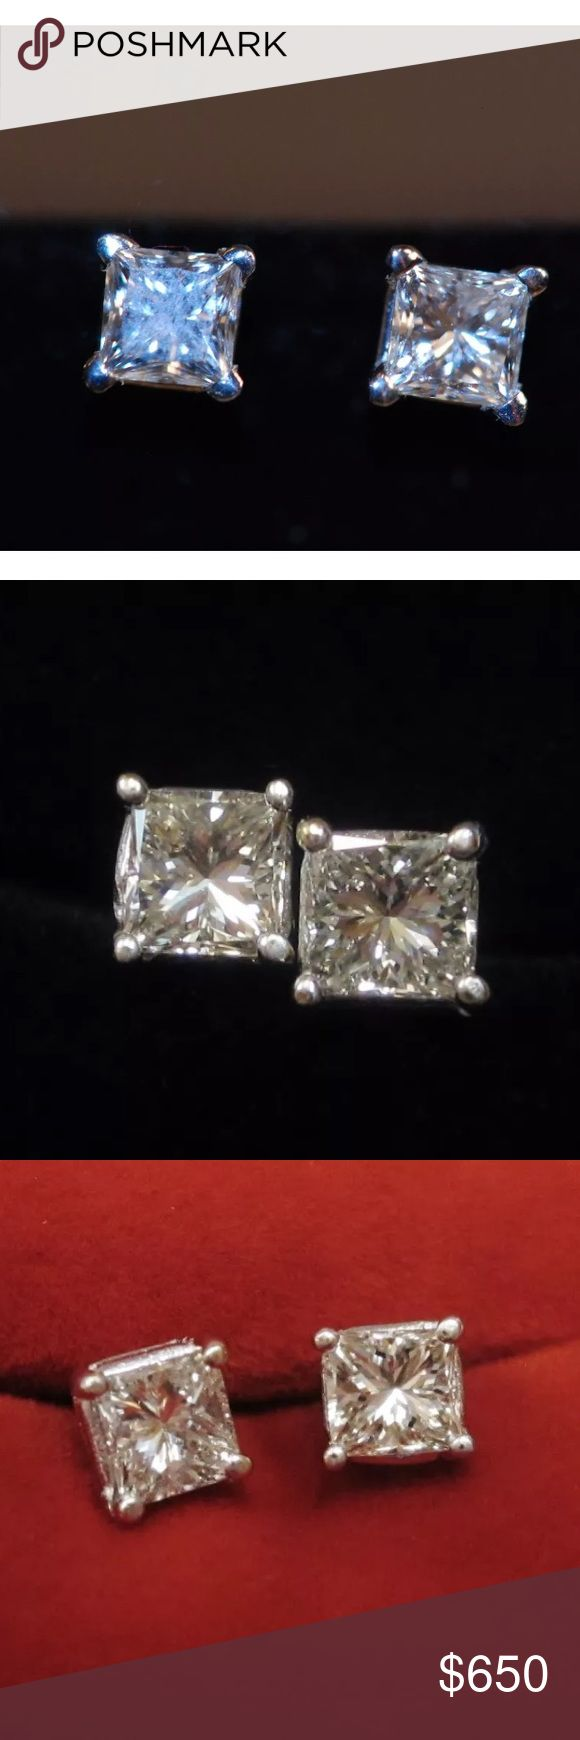 1 carat 18k princess cut diamond earrings 1 carat white gold princess cut diamond earrings! High quality! Comes with appraisal and certificate. Retail over $2500!!! Jewelry Earrings